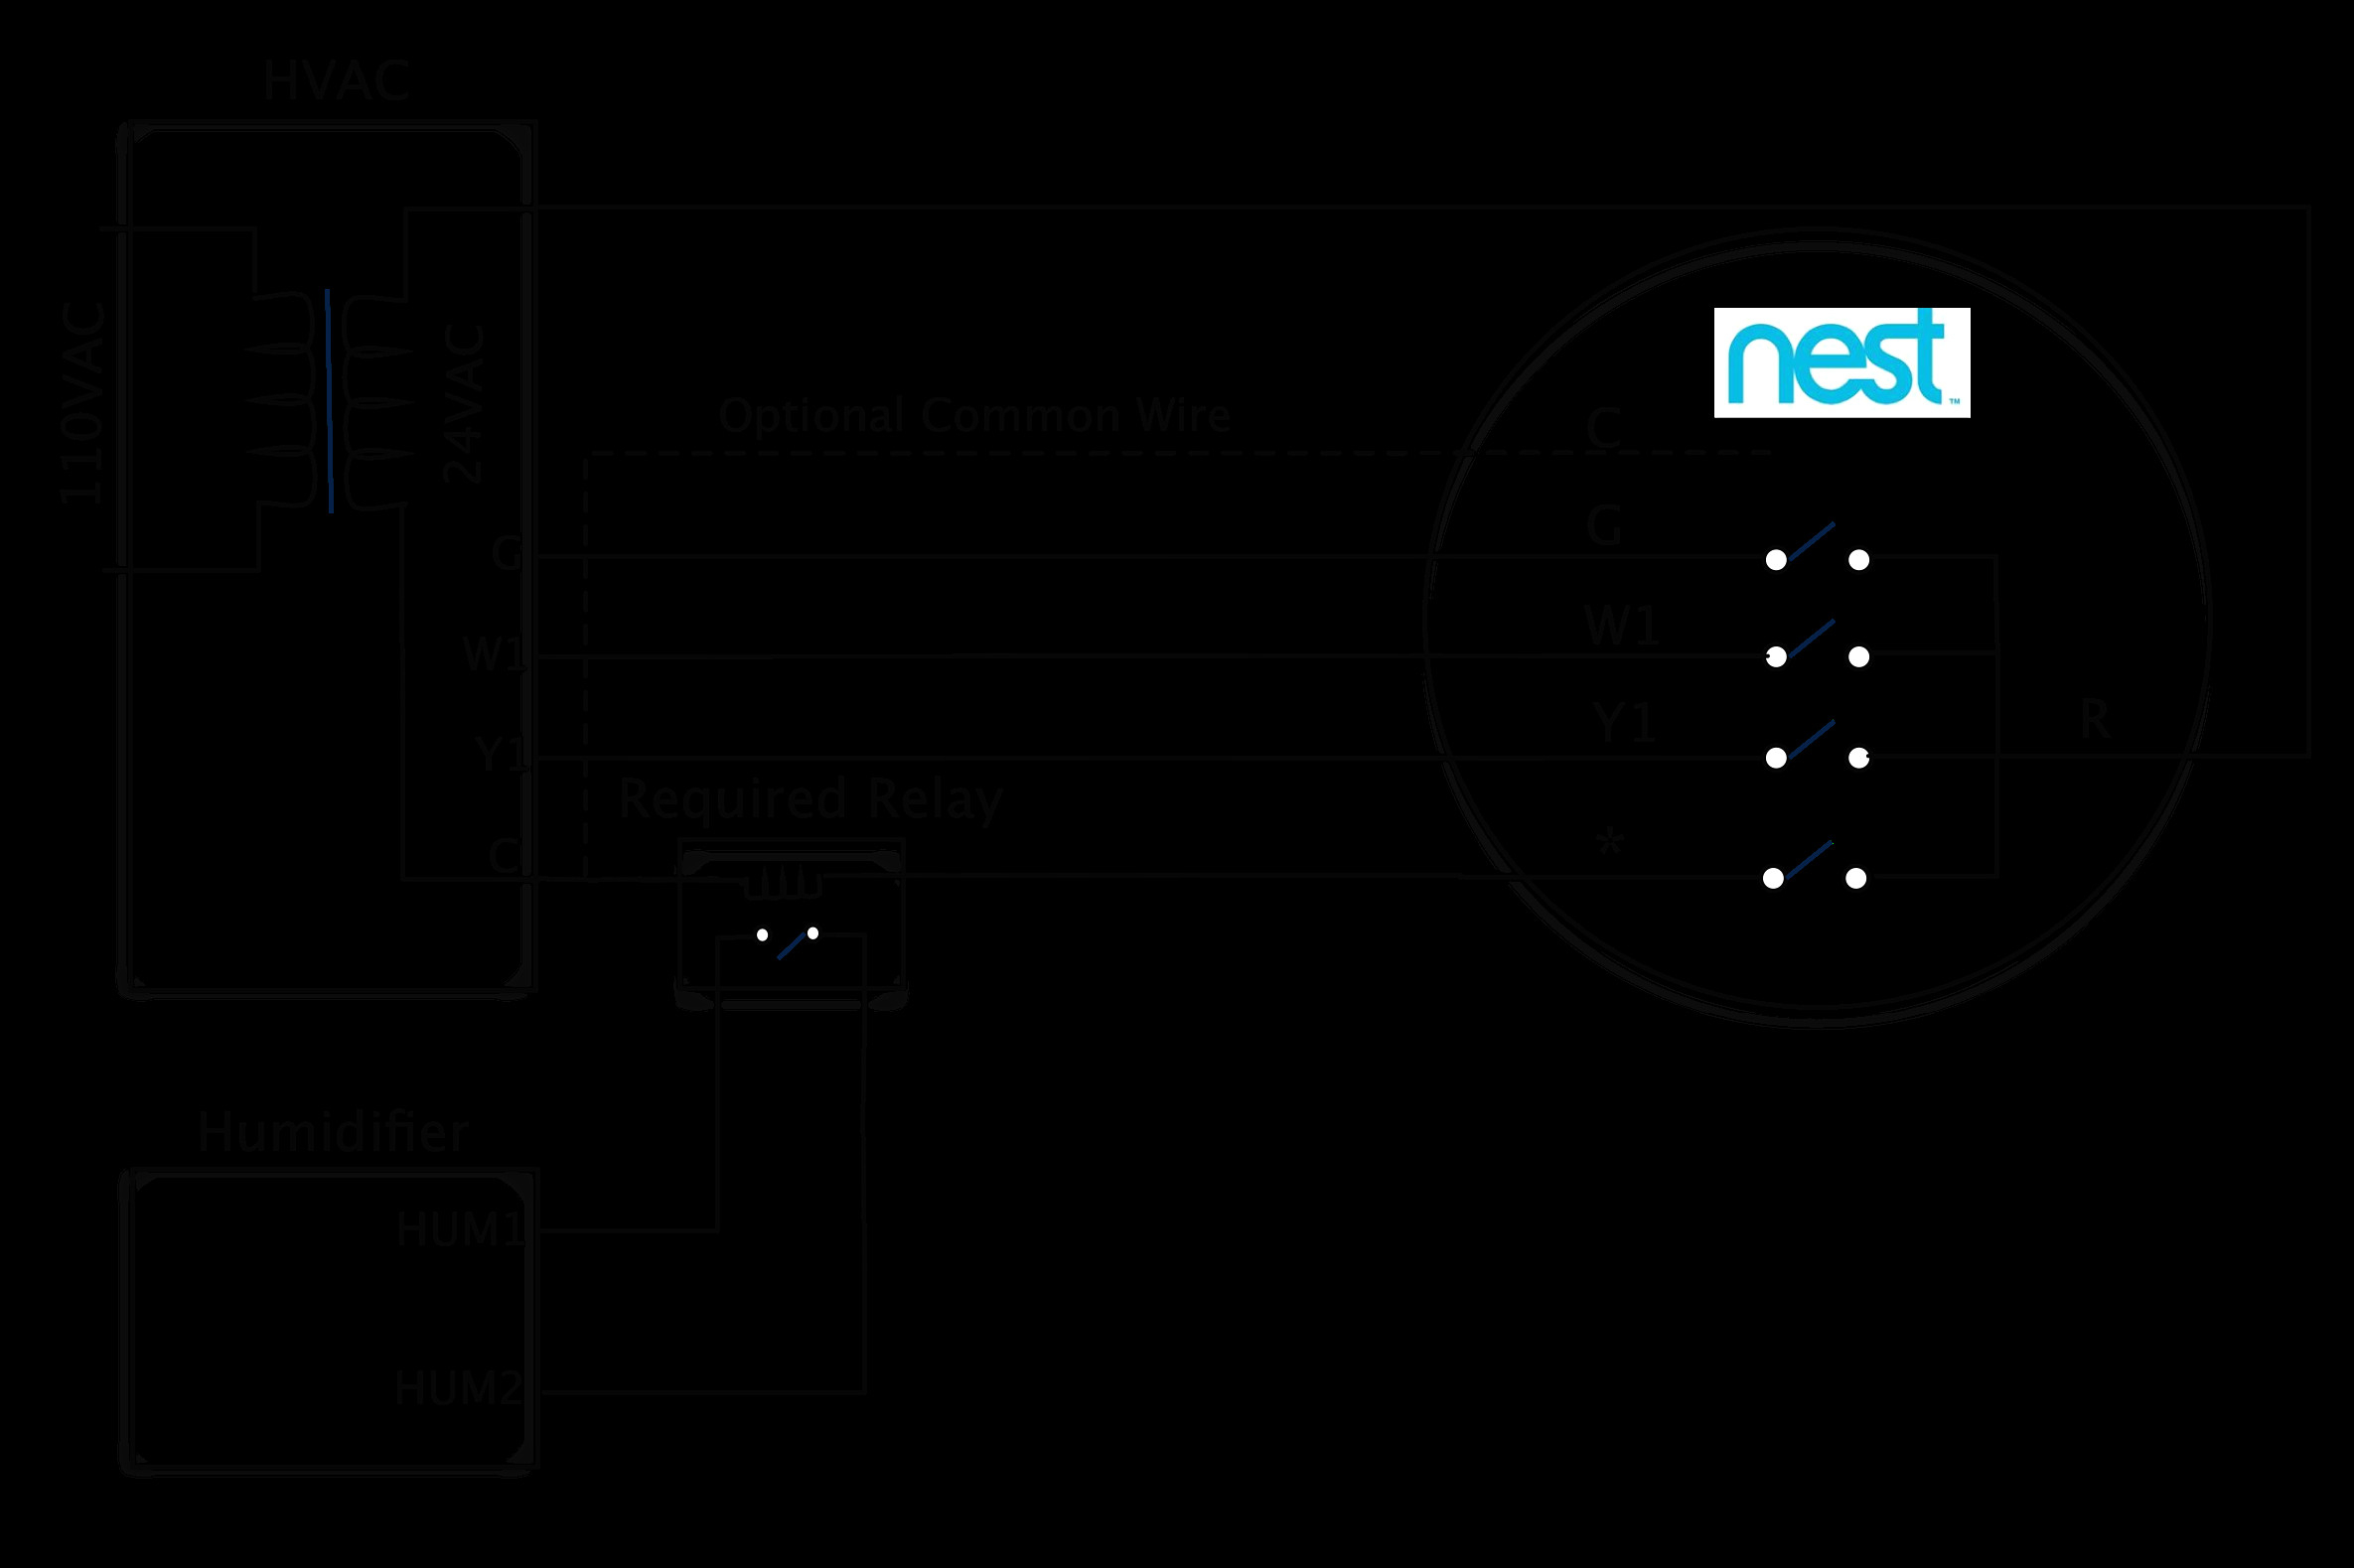 Nest Wiring Diagram Heat Pump Recent 5 Nest Thermostat Wiring - Wiring Diagram Nest Thermostat Heat Pump